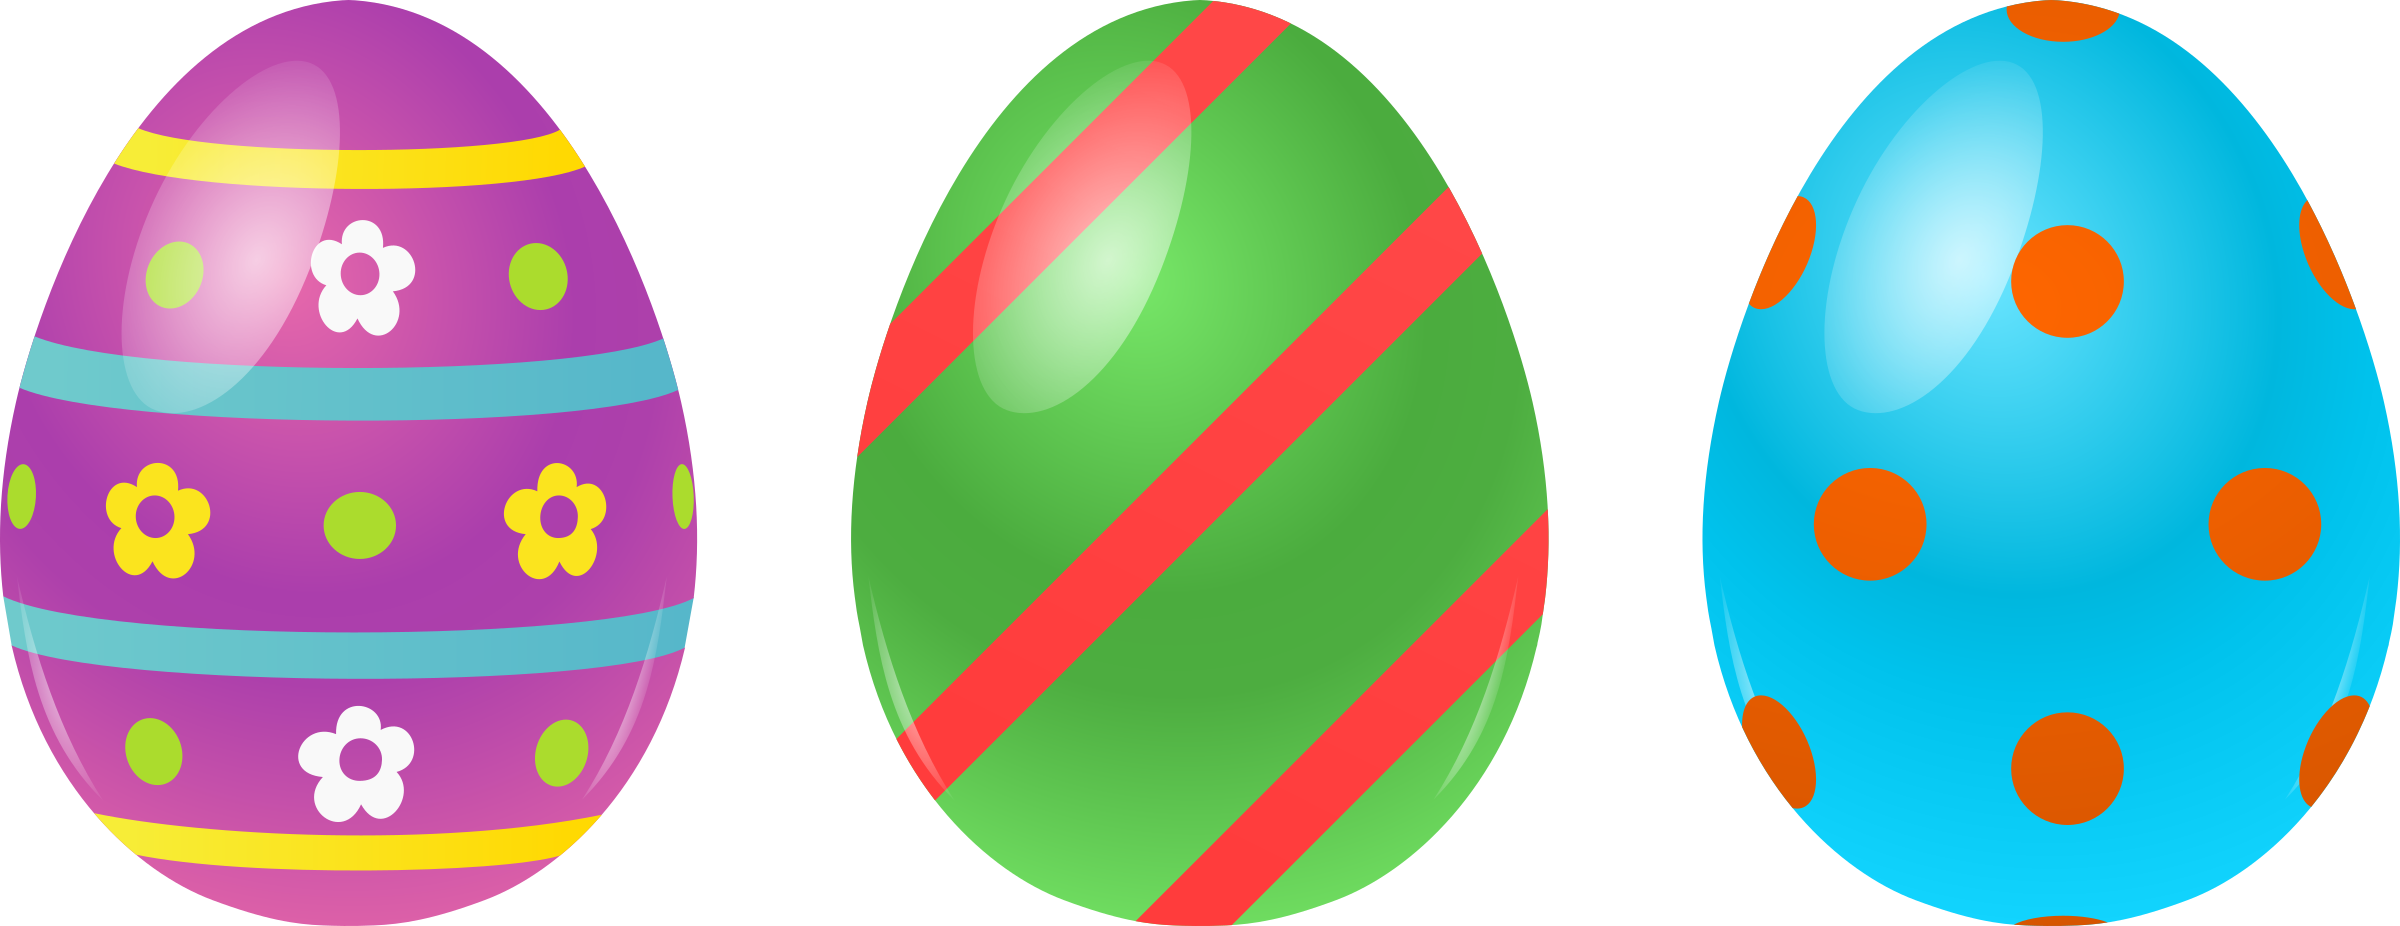 3 Easter Eggs by @cyberscooty, 3 differents decorated eggs.